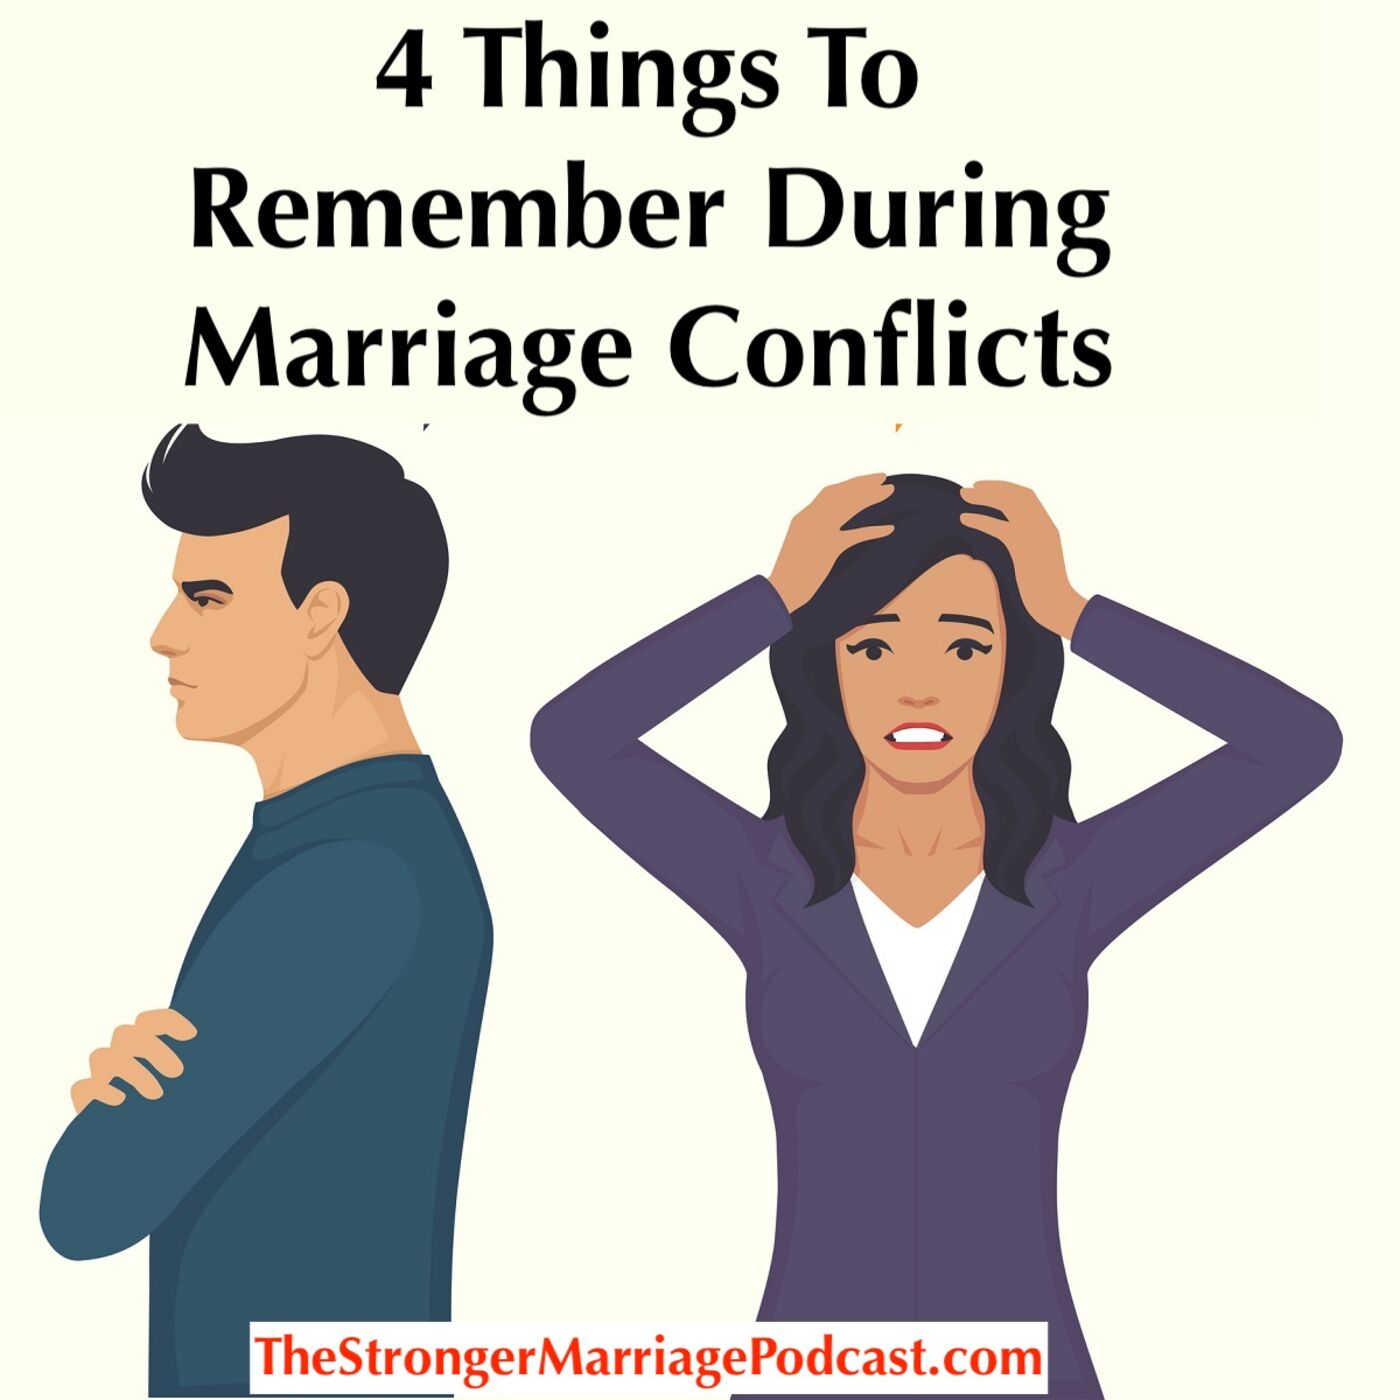 4 Things To Remember During Marriage Conflicts